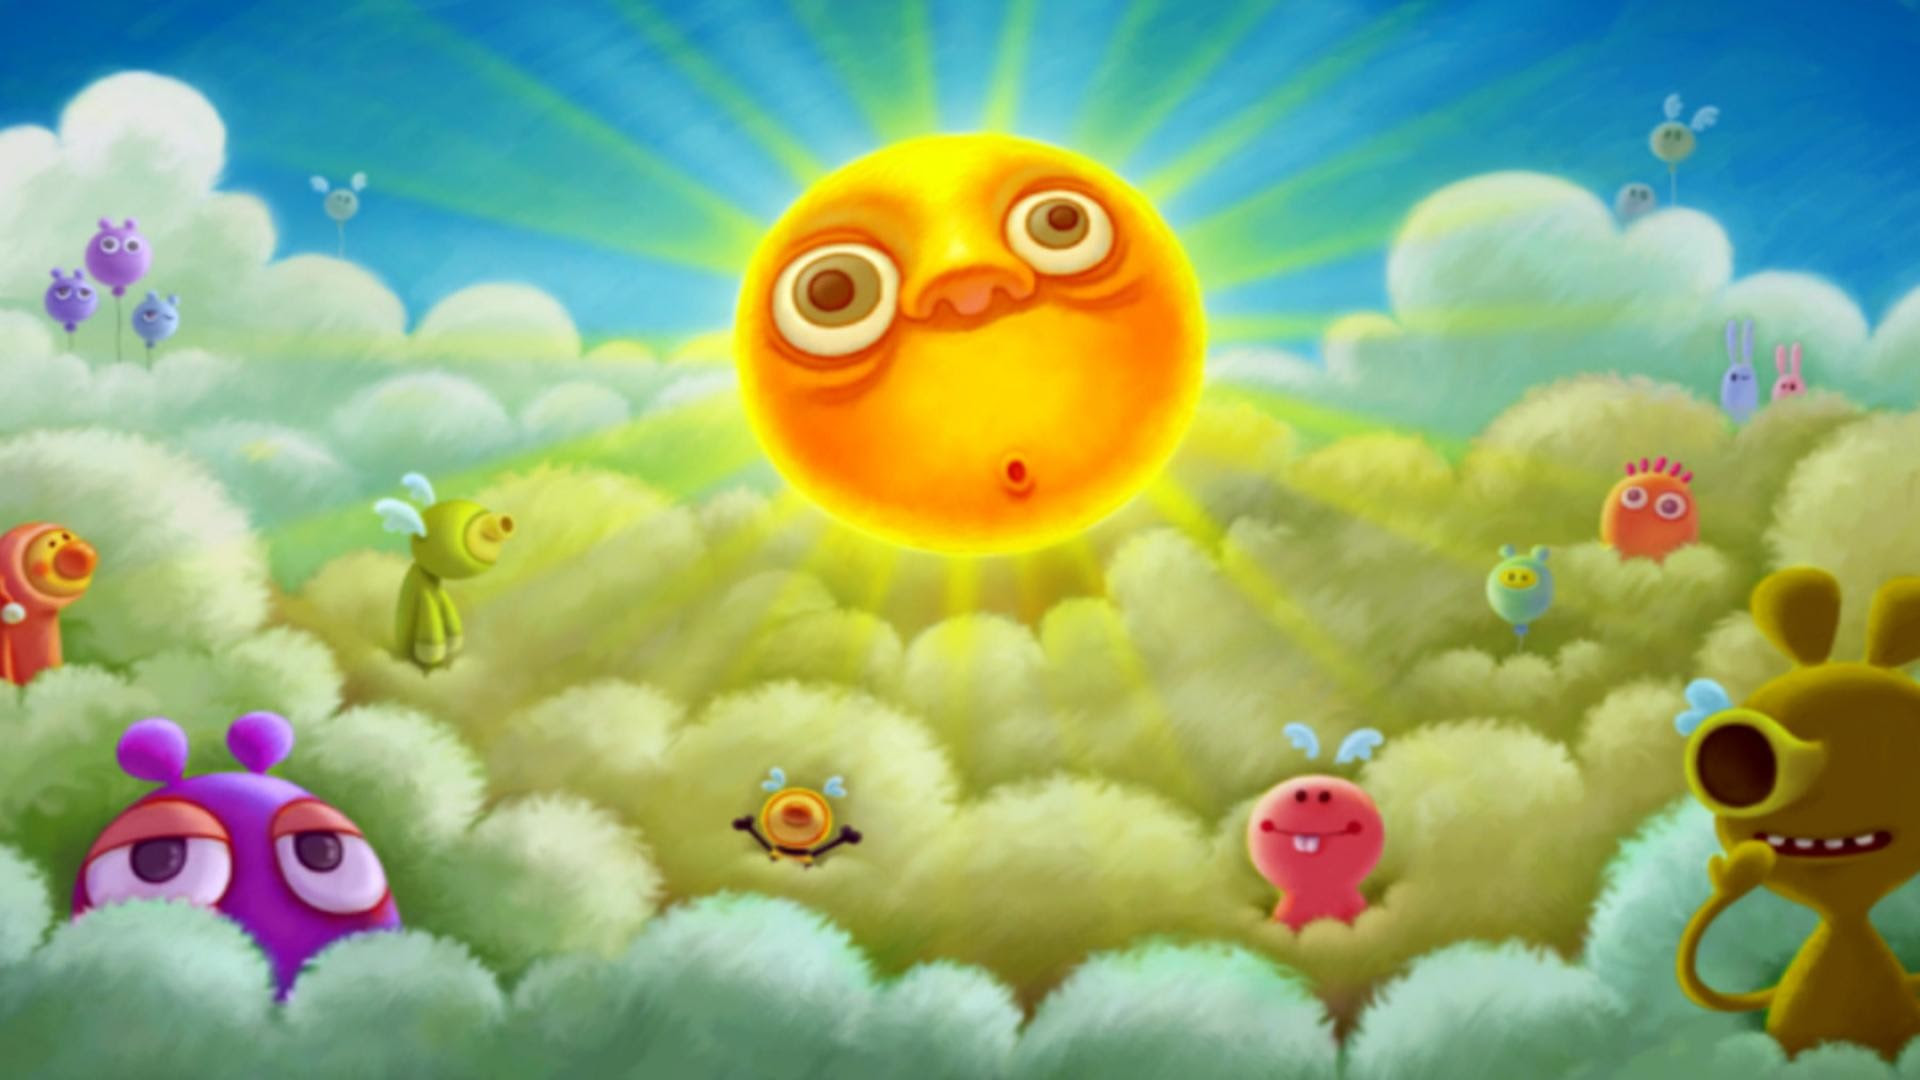 Funny Cartoon Wallpapers Free Download Funny Png